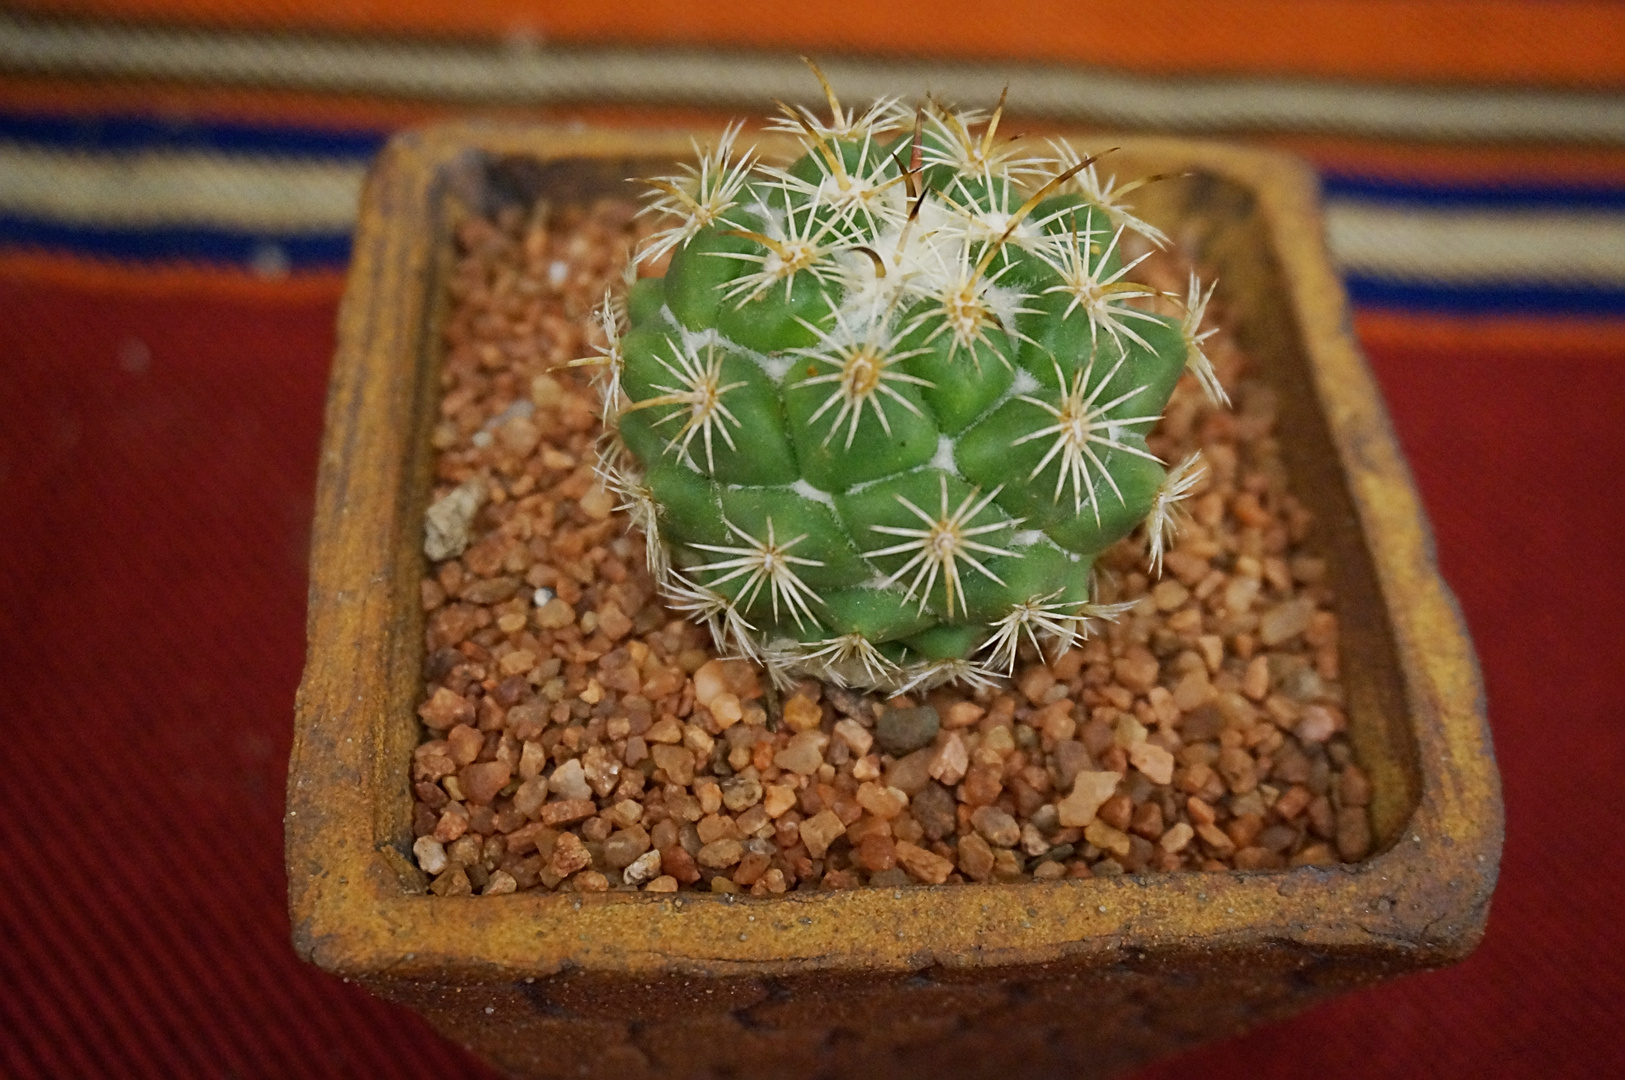 SCCSS 2018 May - Winner Intermediate Cactus - Sally Fasteau - Corypantha pallida ssp. calipensis